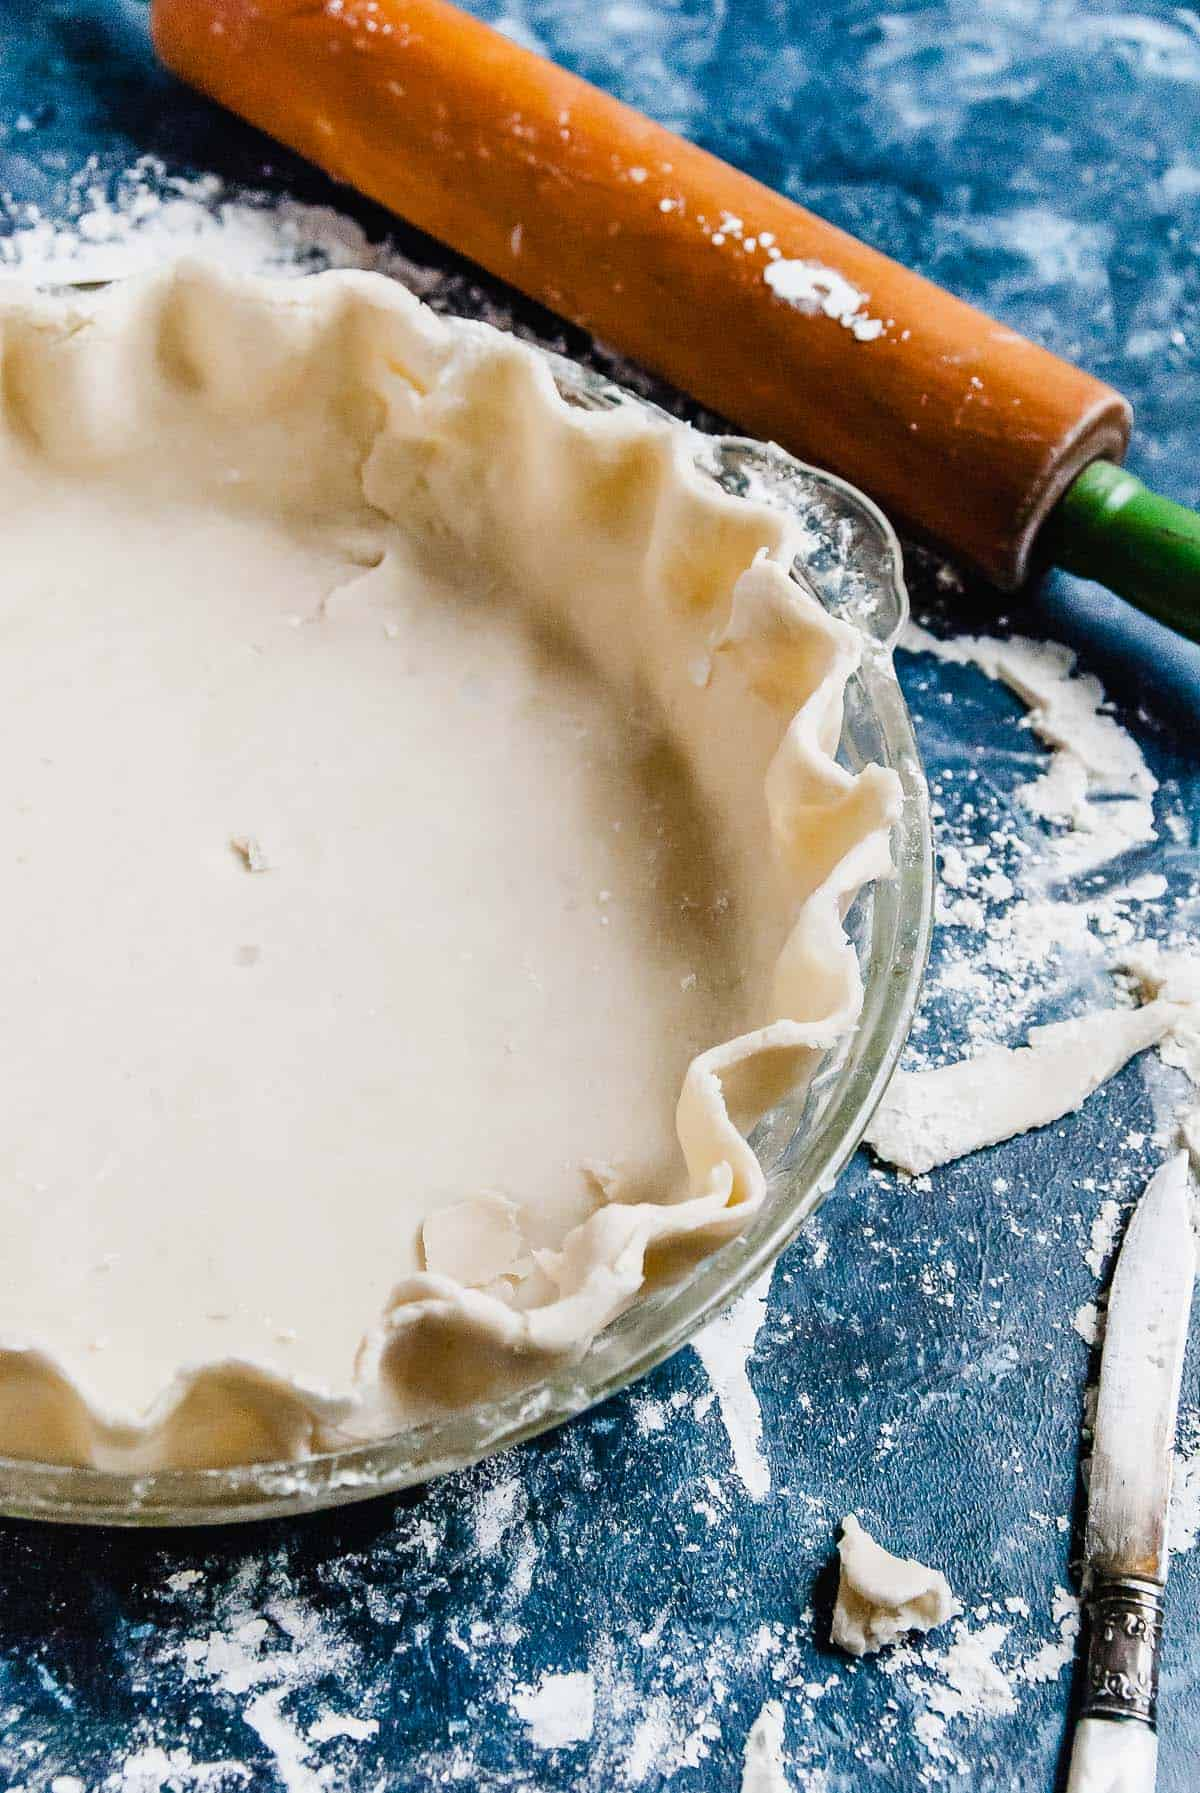 Wondering how to make the best vegan pie crust? This is the easiest vegan pie crust recipe made with coconut oil that is perfect for your next party!